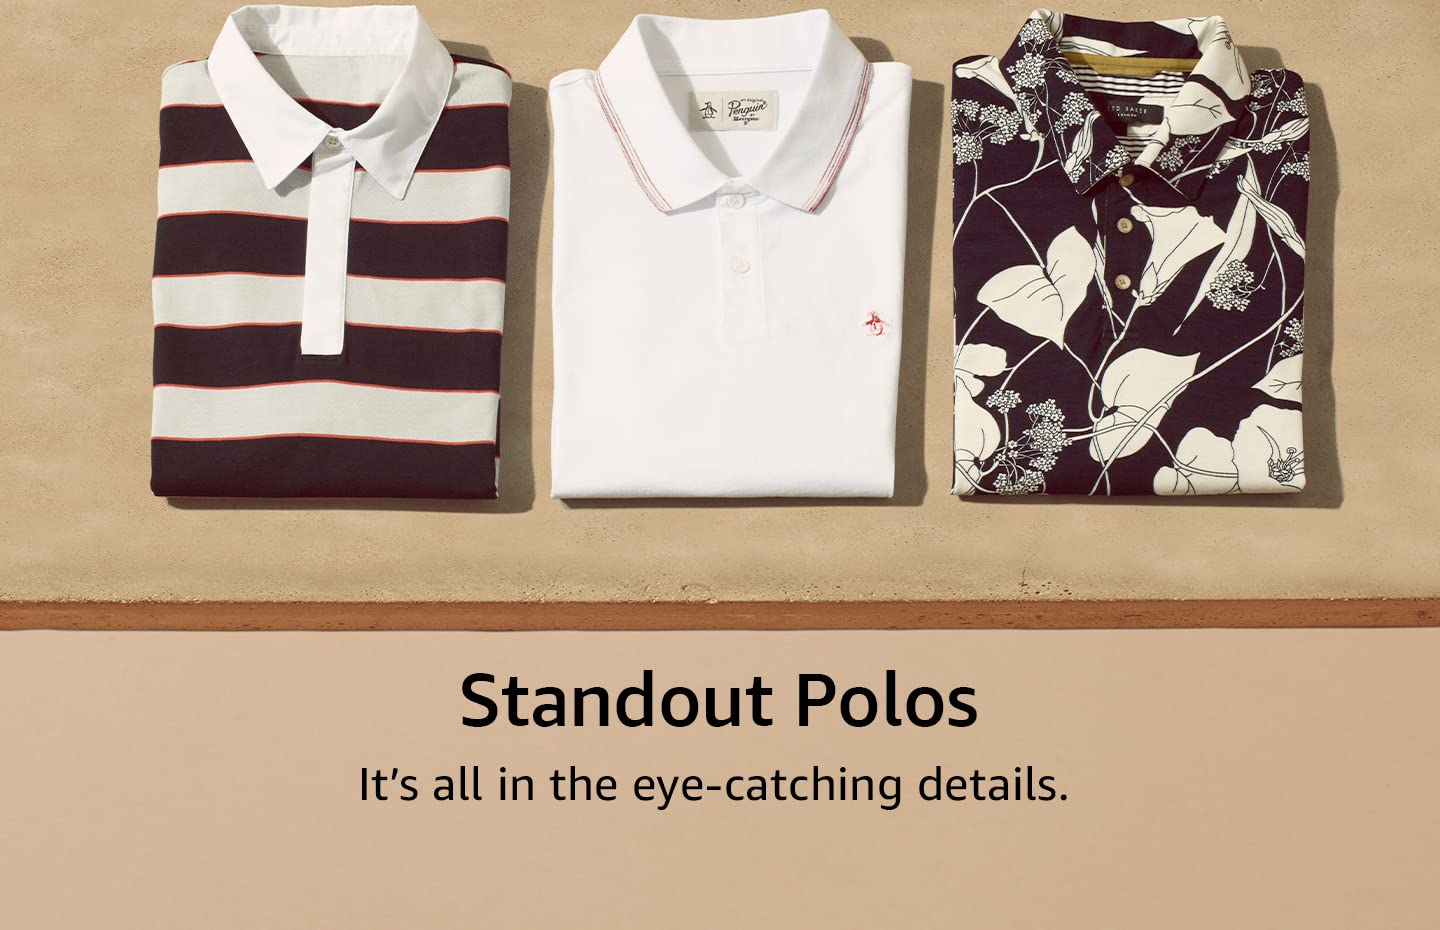 Stand out polos